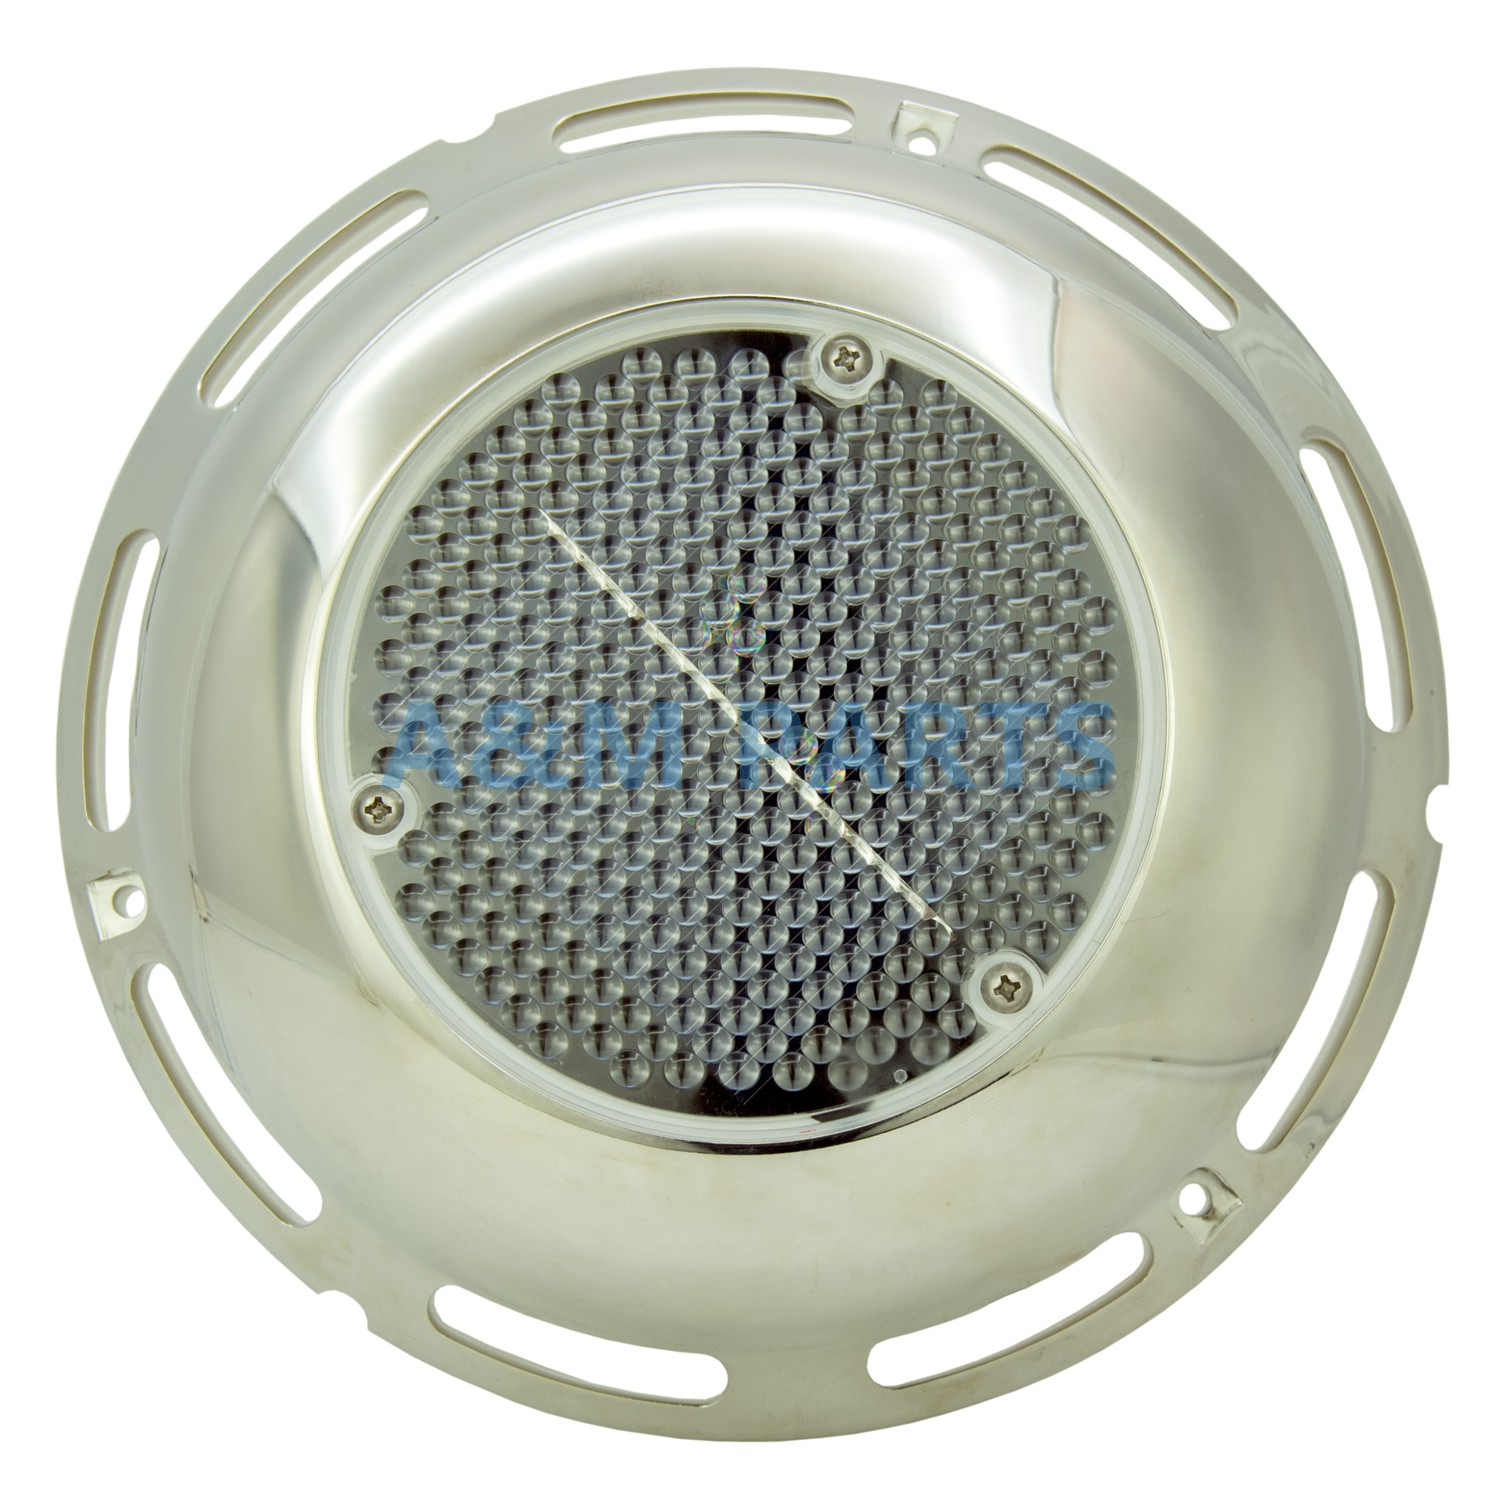 Solar Powered Ventilators Caravan RV Boat Exhaust Intake Fan Air Vent W/ Battery Switch Stainless Steel Cover